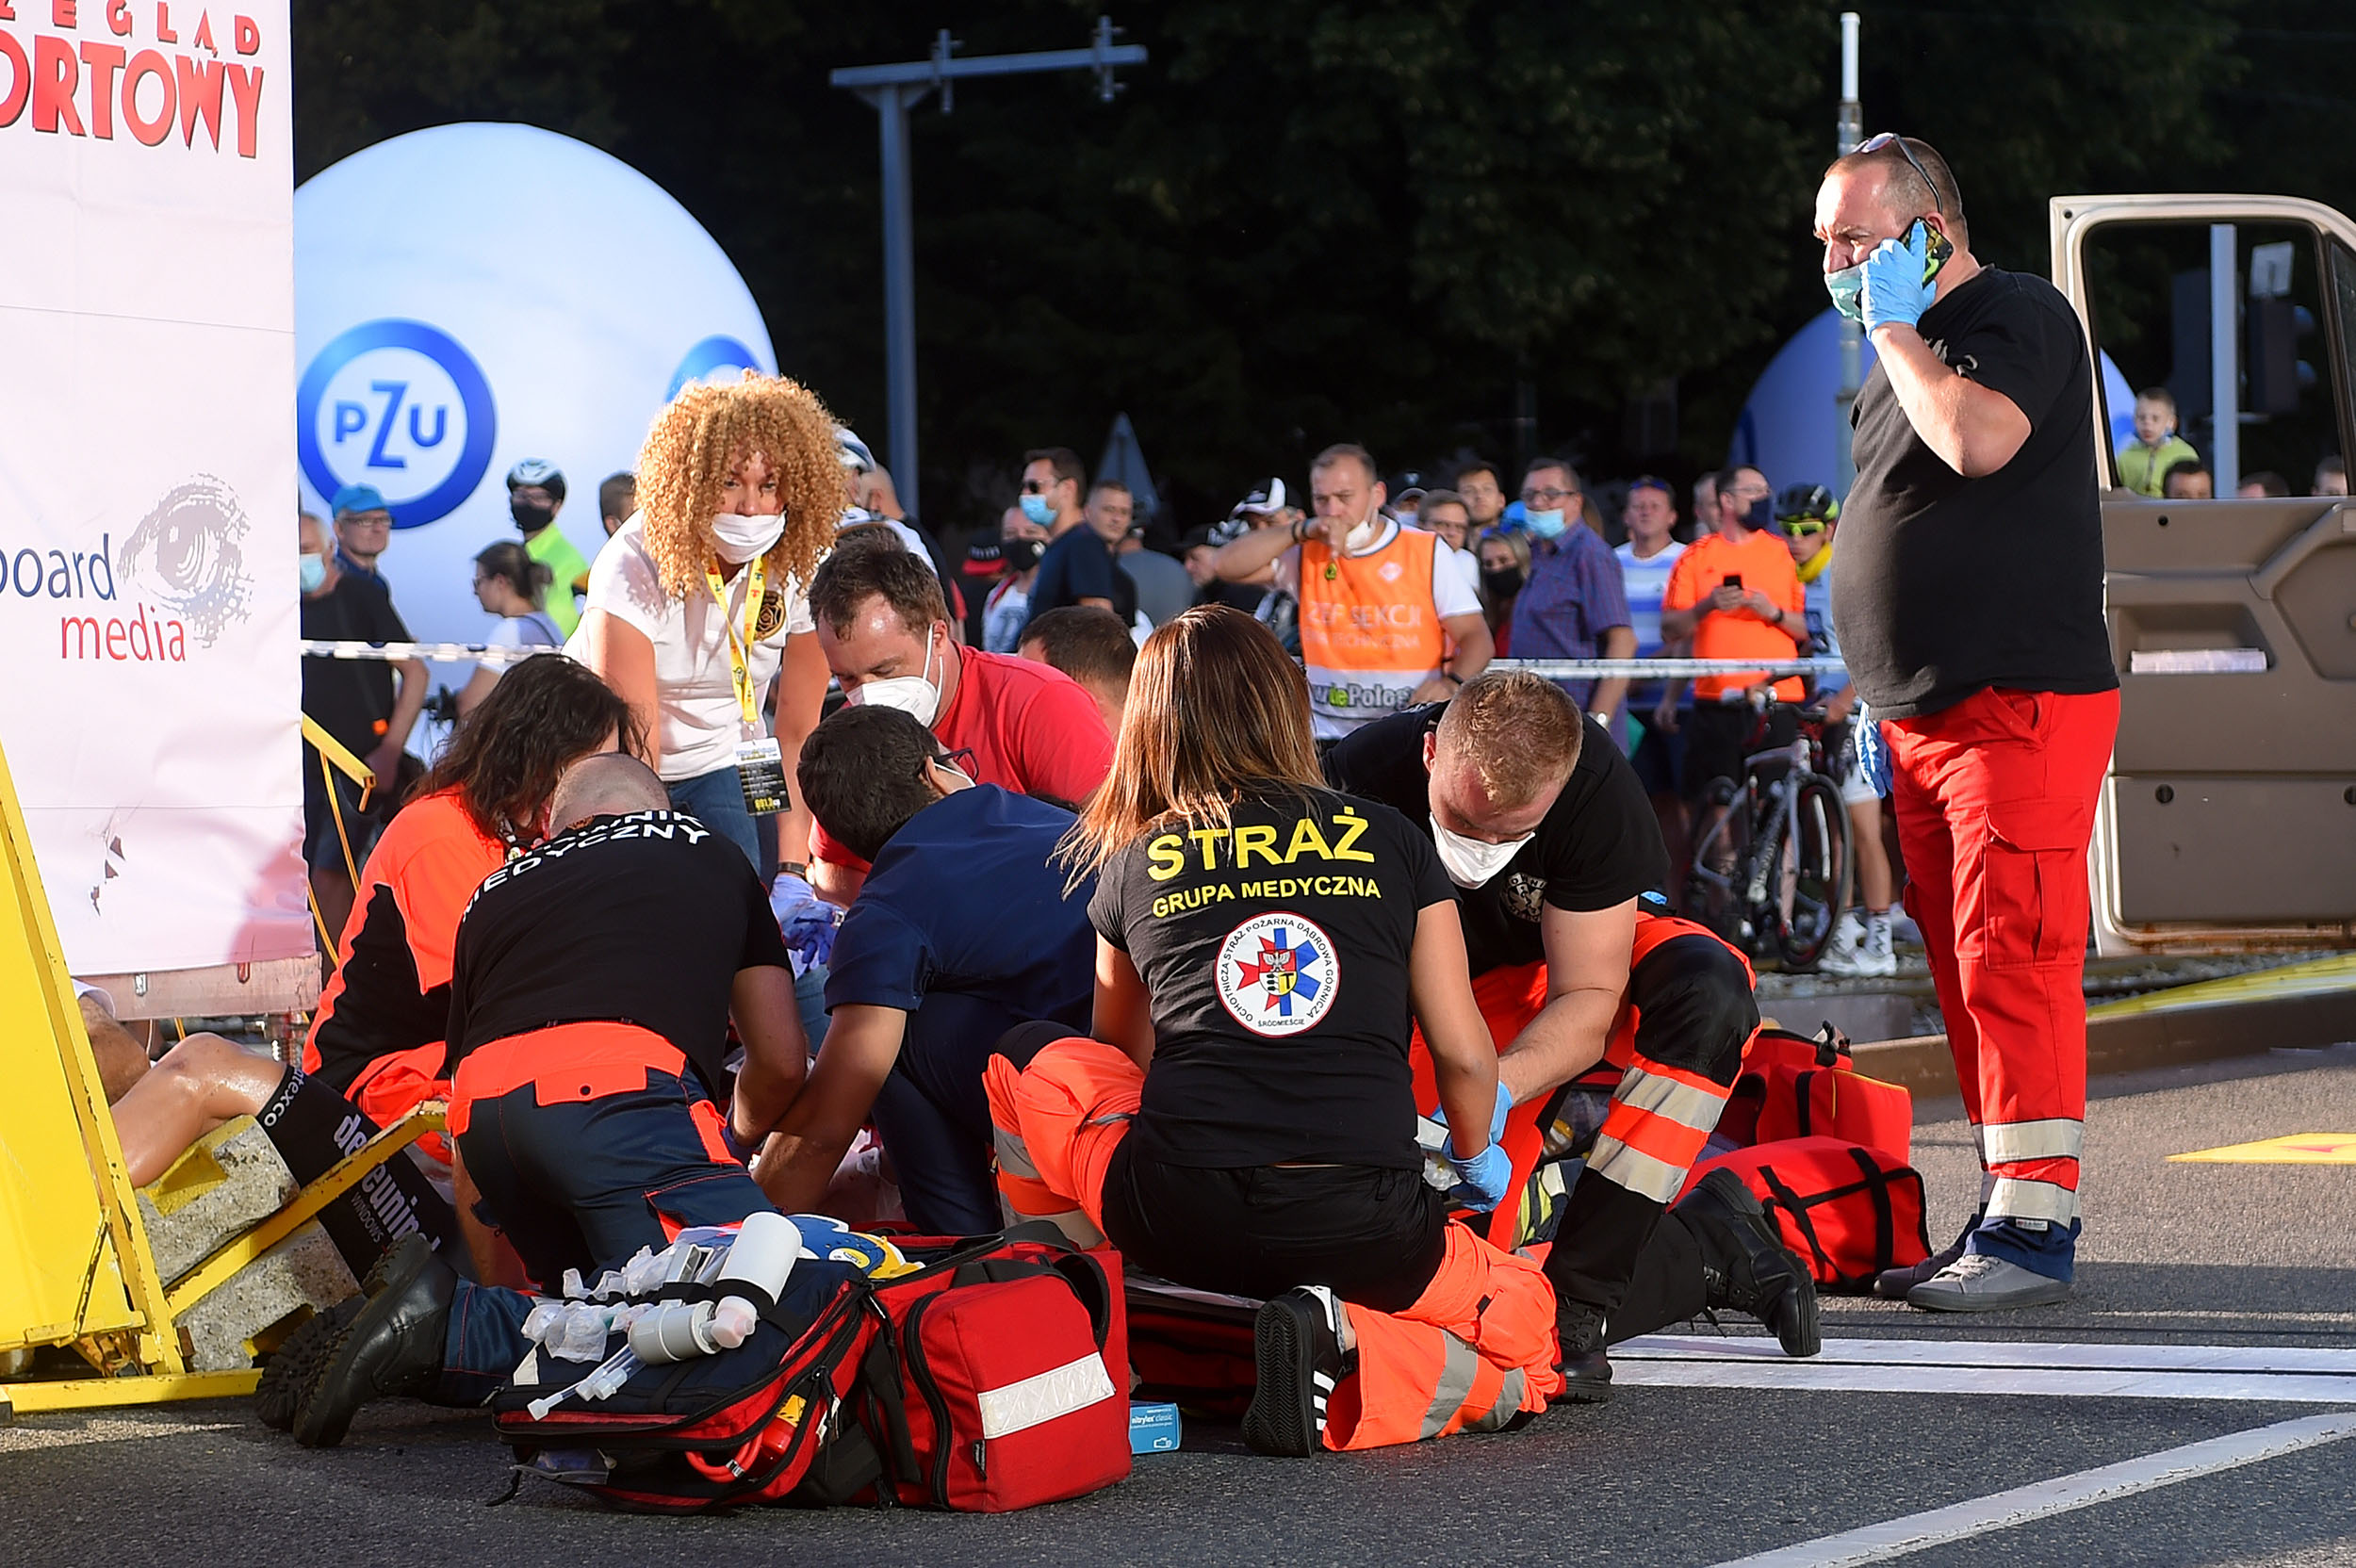 Fabio Jakobsen in a 'comatose condition' following horrific crash at Tour of Poland